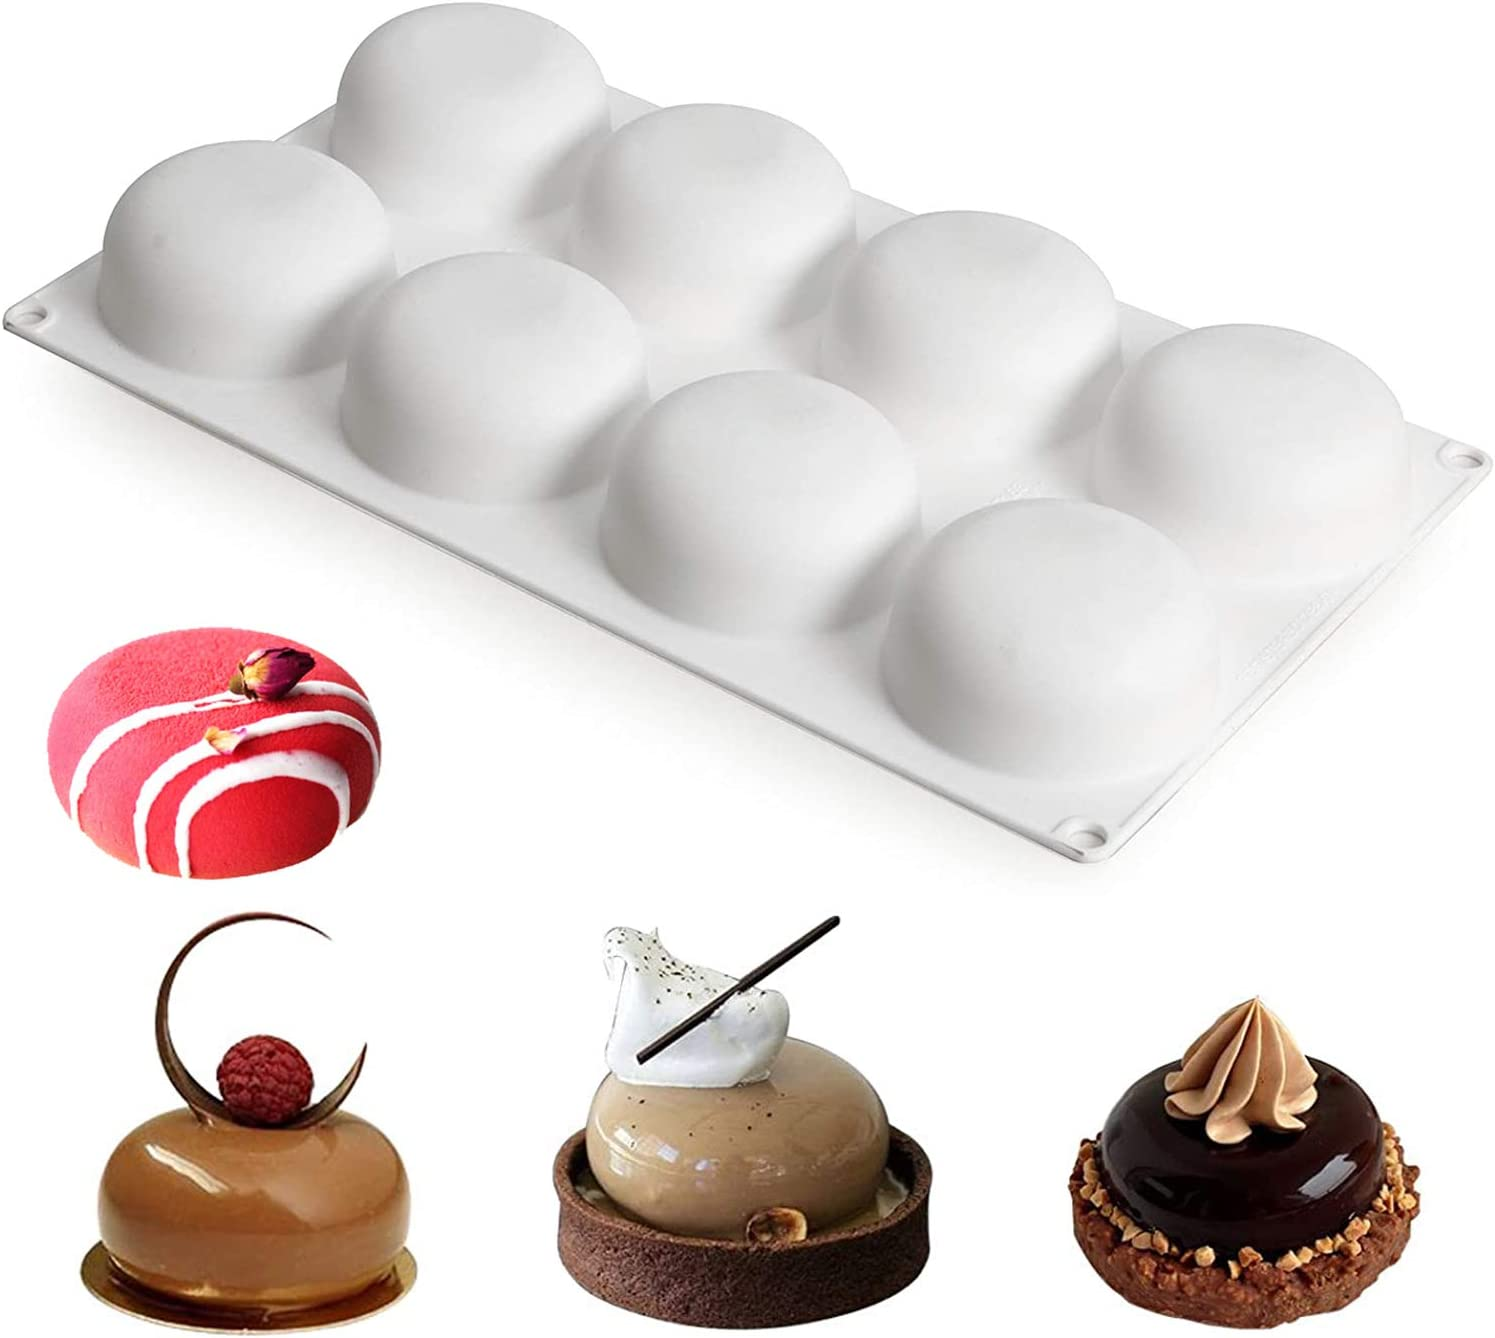 3D Silicone Mould Bakeware Pan Mold Baking Cupcake Mousse Chocolate Candy Soap